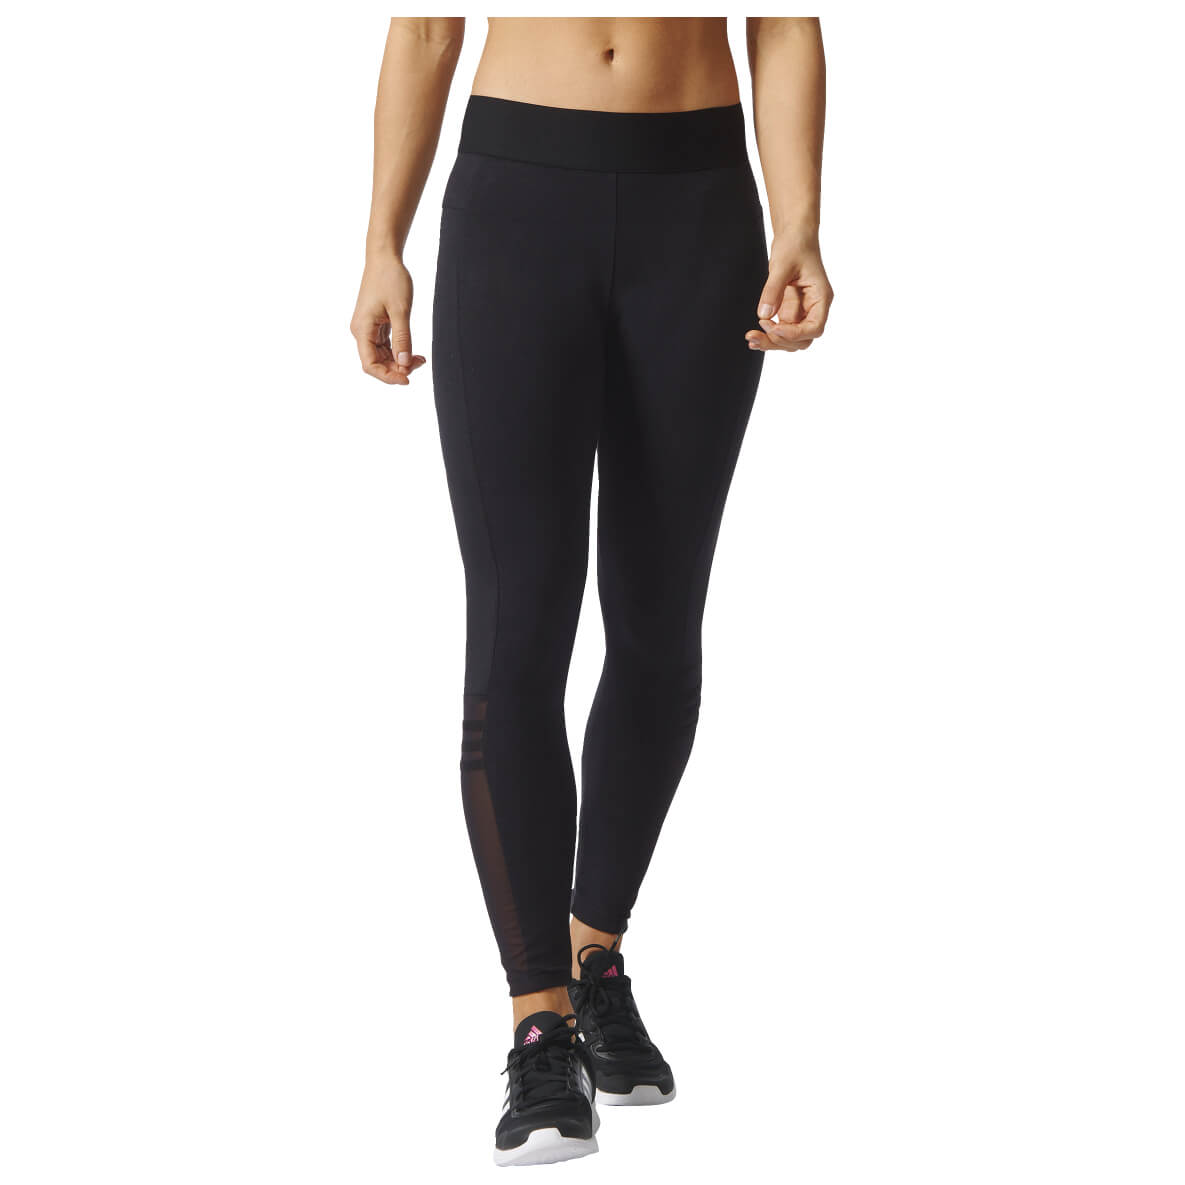 ffd80eced8a Adidas Takeover Tight - Tracksuit Bottoms Women's | Buy online ...